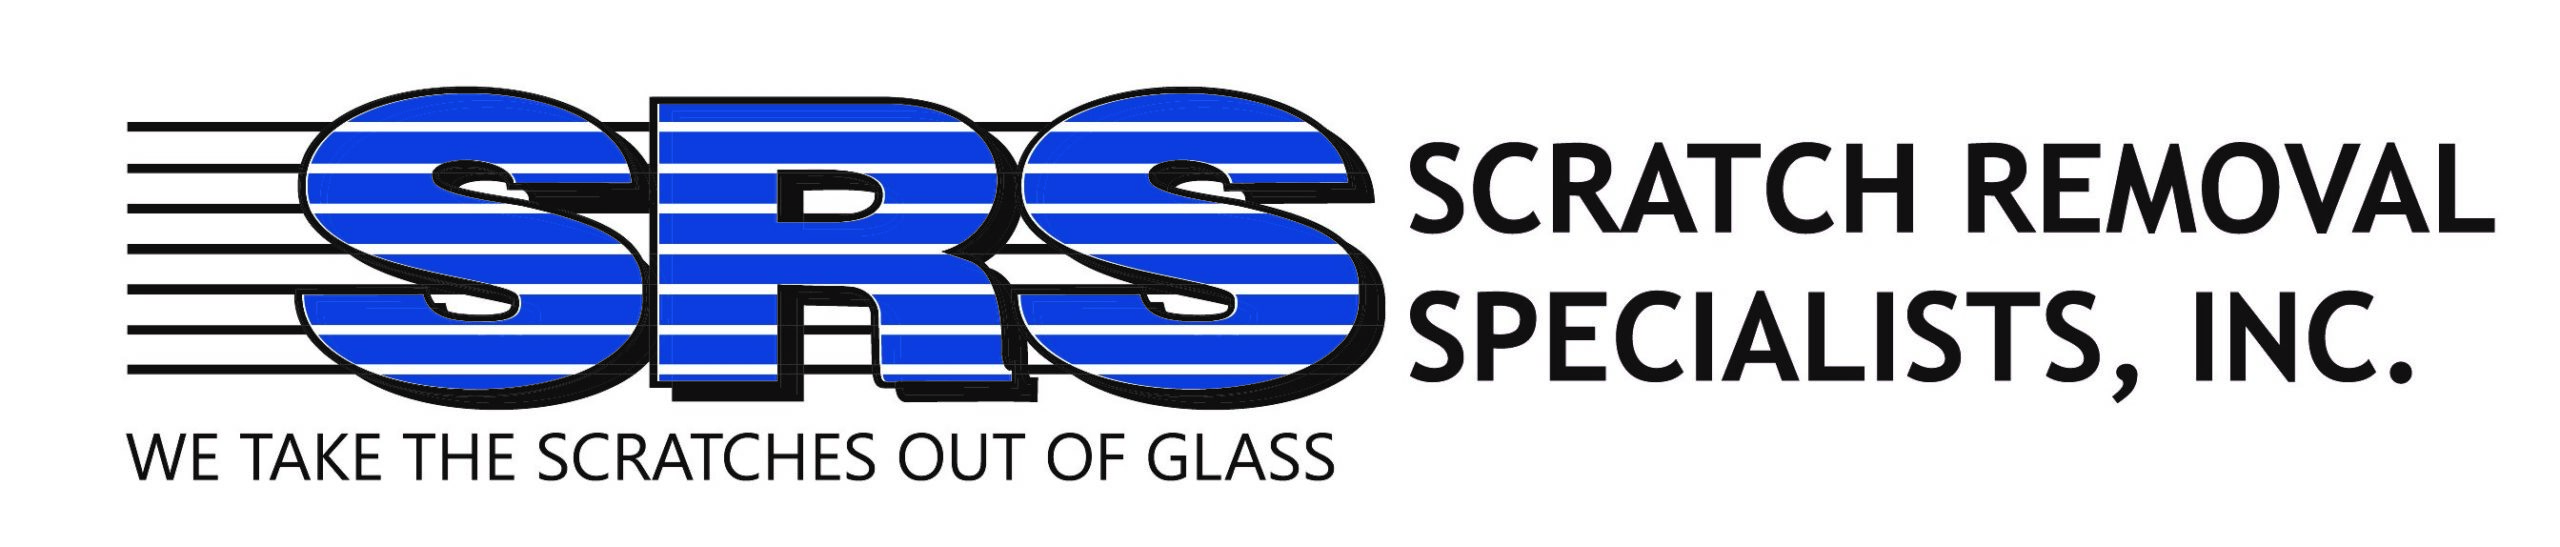 SRS with tagline logo - cropped